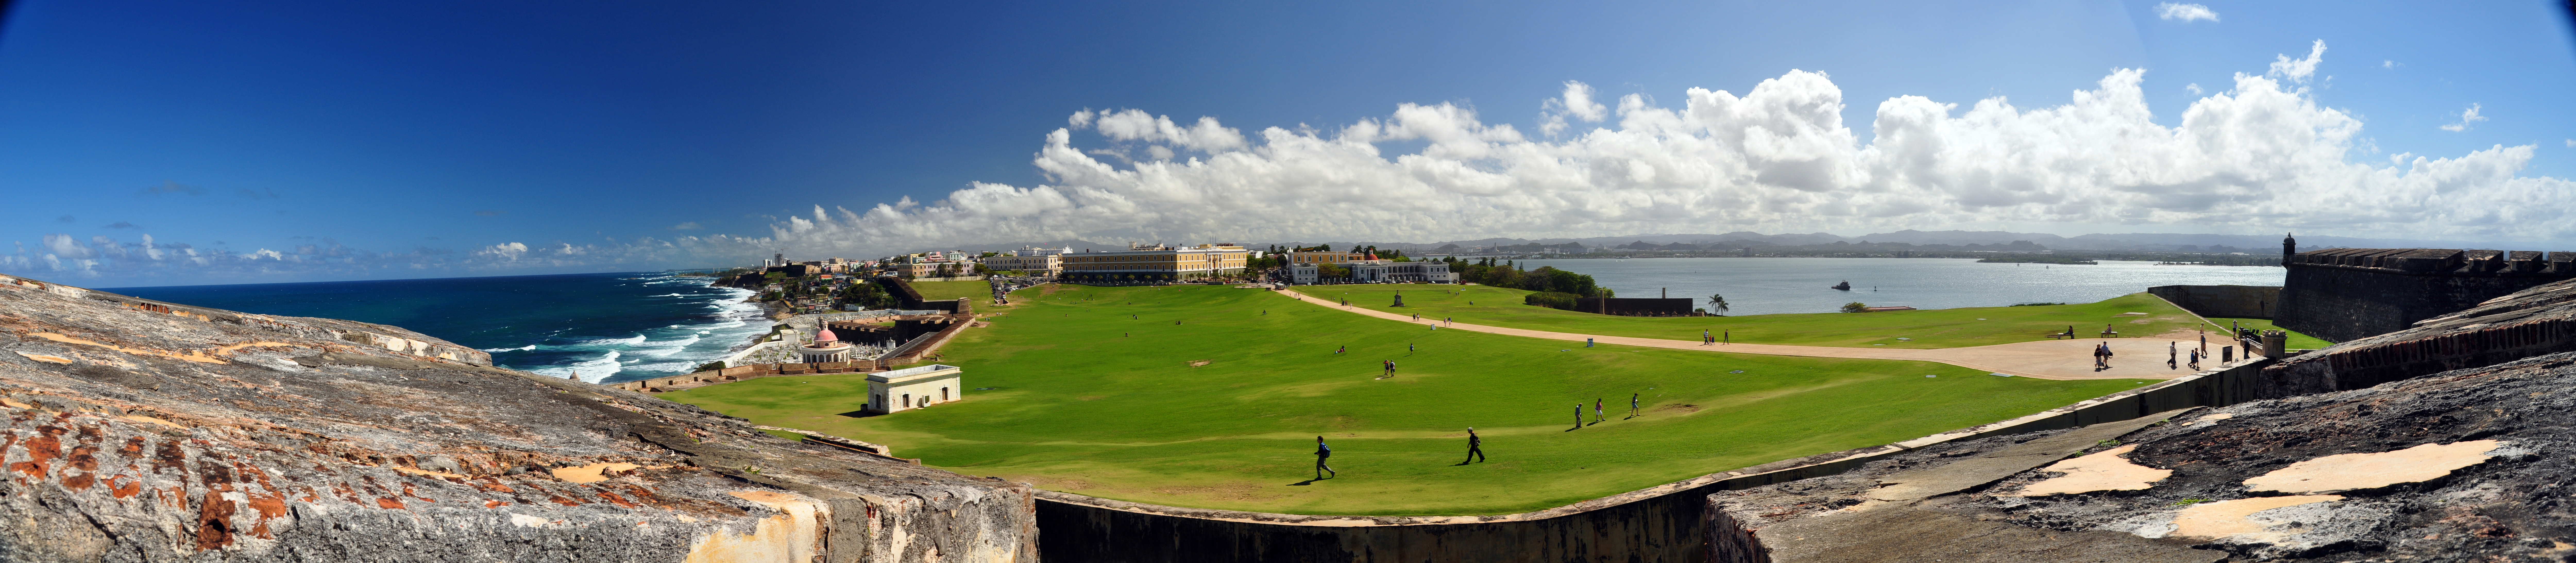 Best Things to Do in Puerto Rico – 2018 – Ready for Tourists After Hurricane Maria